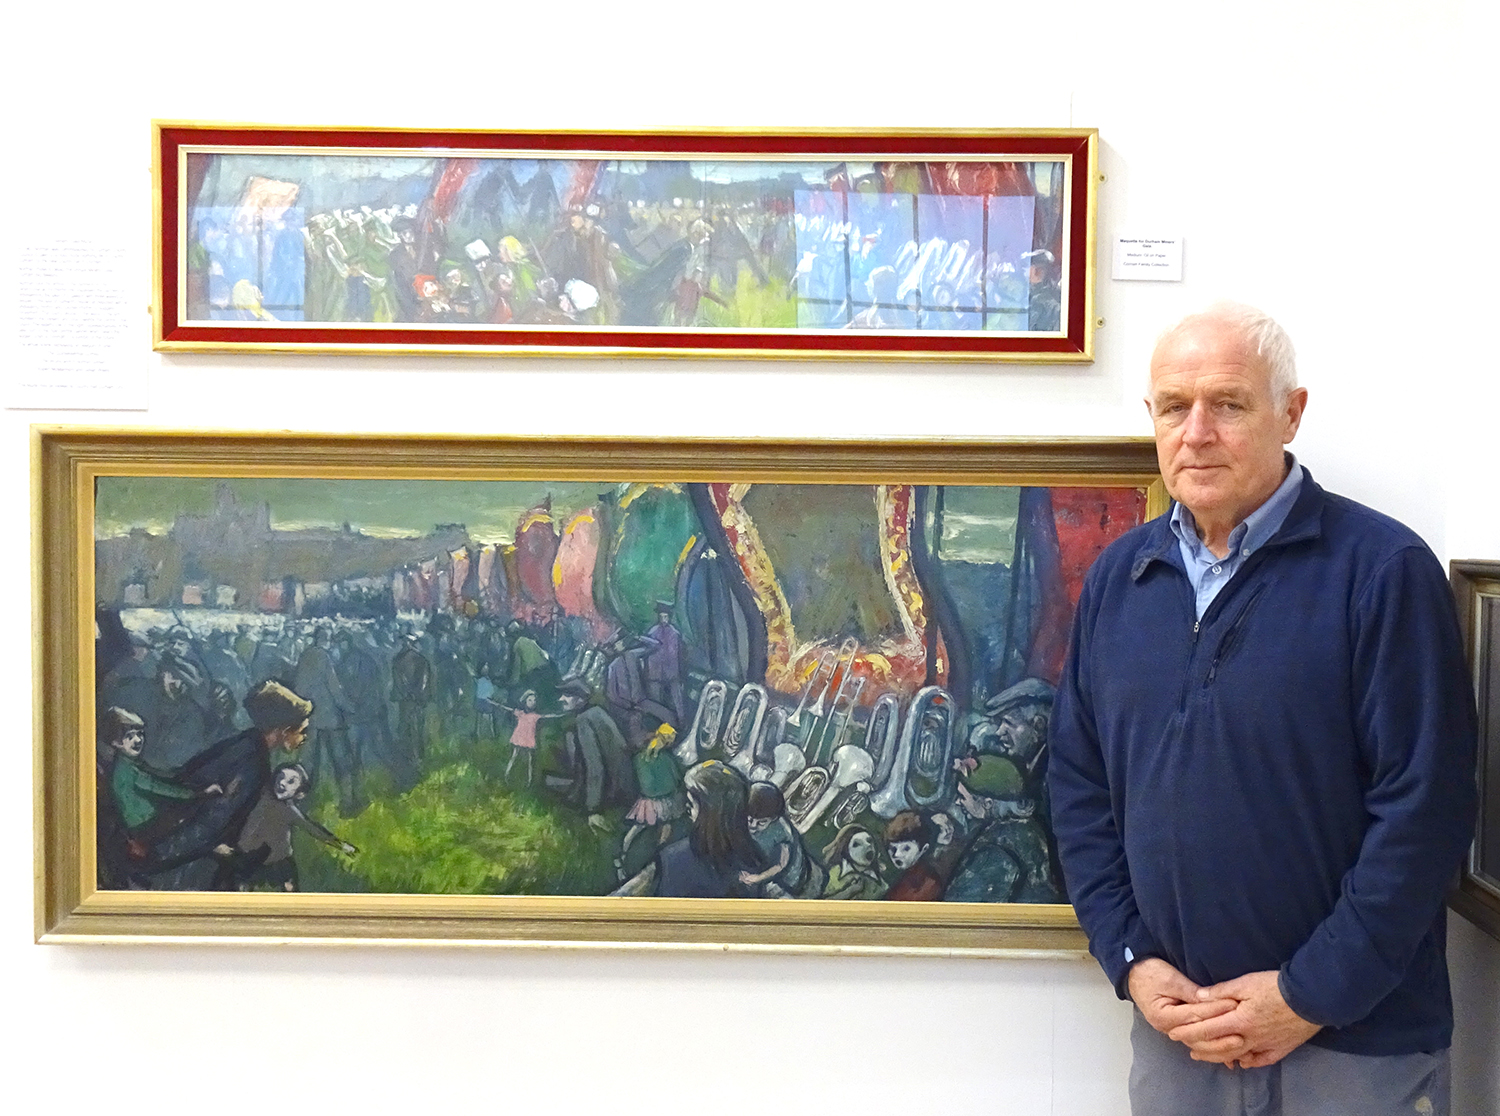 Gallery Room Dedicated in Memory of Norman Cornish MBE